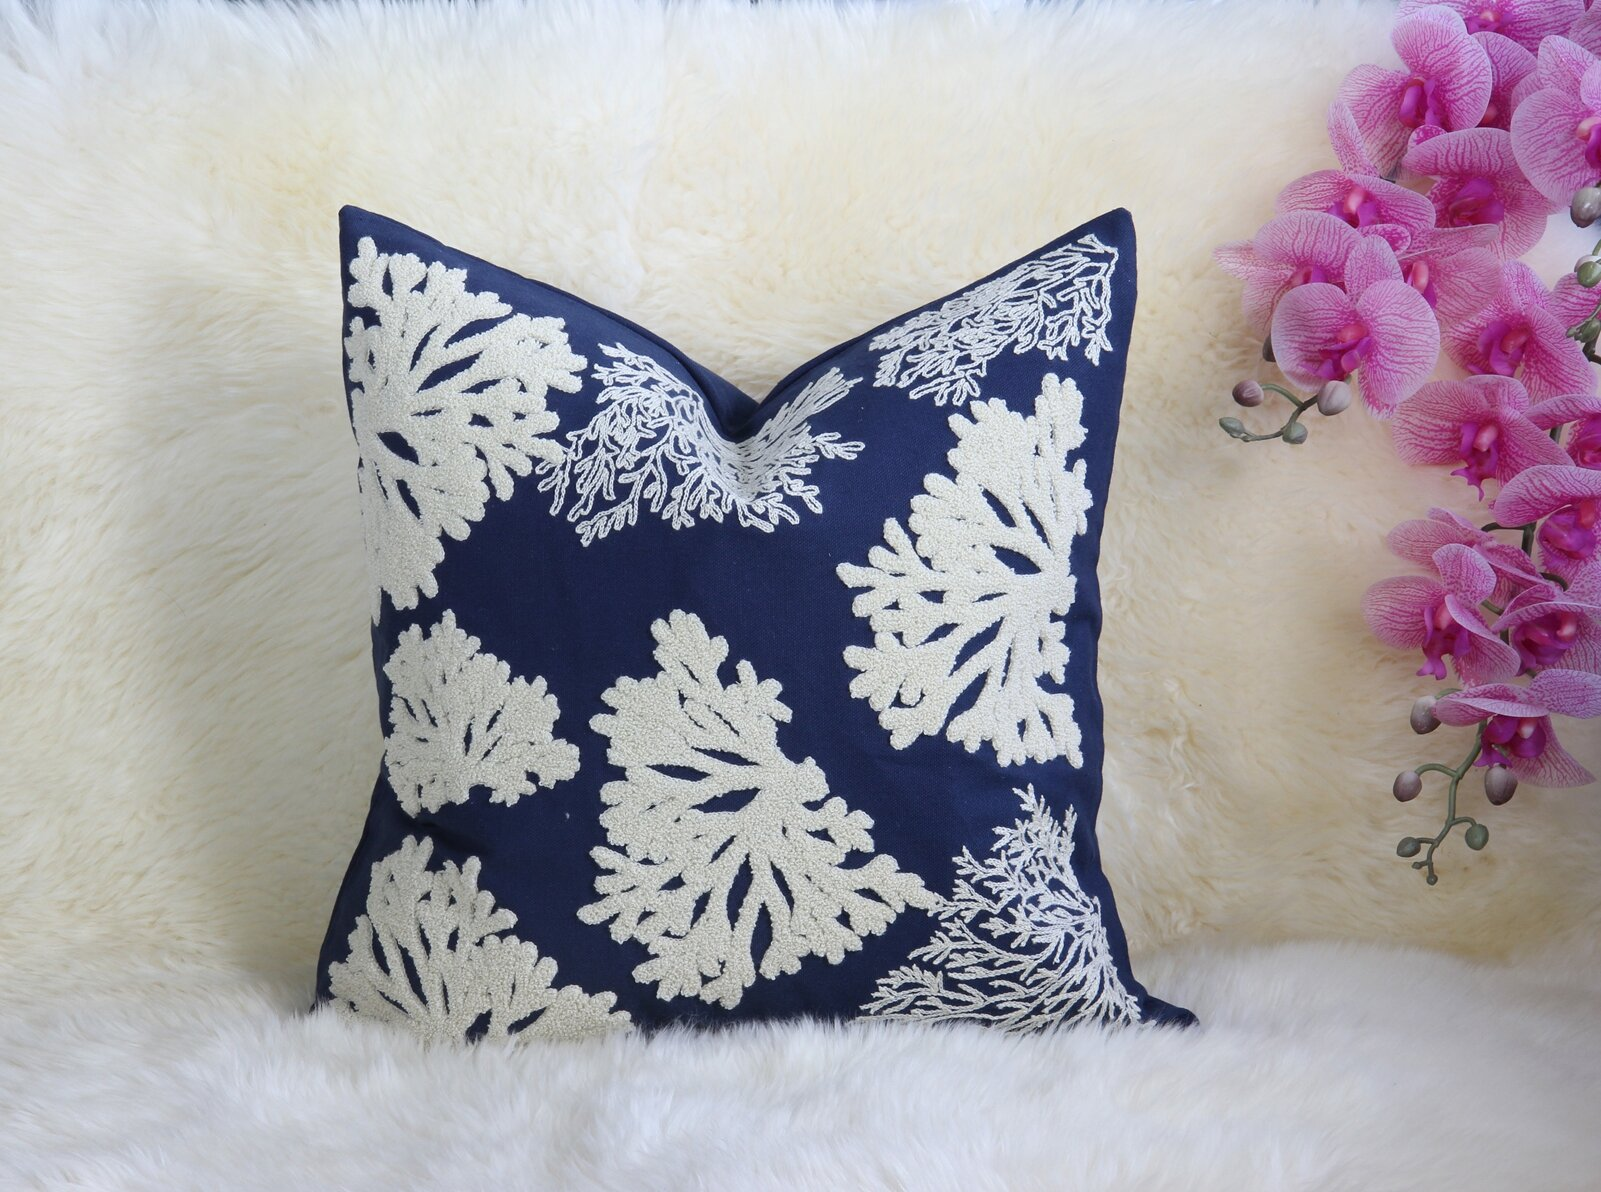 Bay Isle Home Hare Embroidered Cotton Throw Pillow Cover Reviews Wayfair